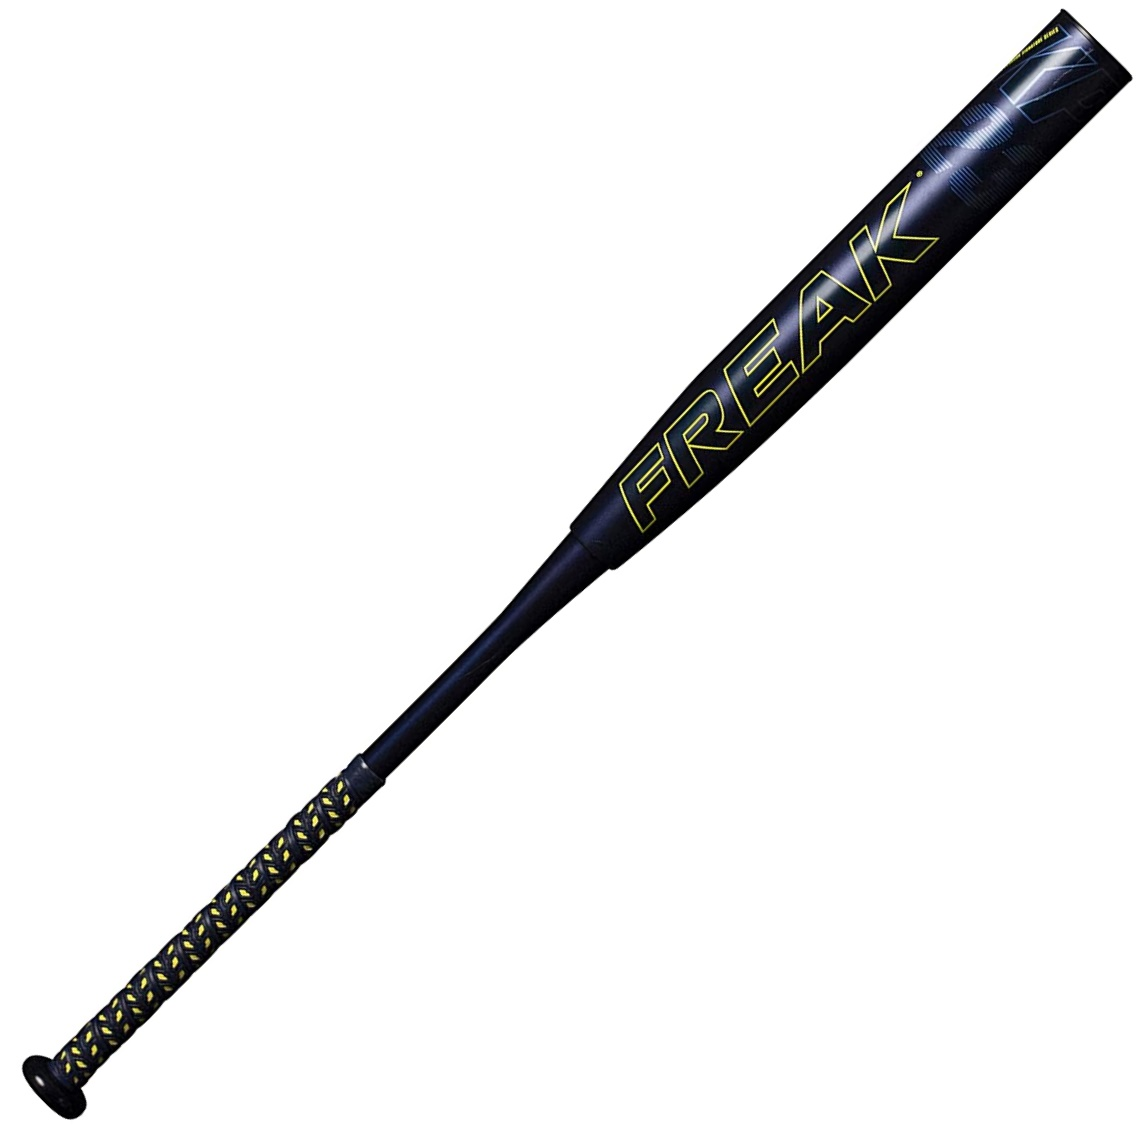 In addition, the Flex 2 Power (F2P) handle optimizes handle flex which maximizes the overall speed through the zone. From the first swing, you'll know this Kyle Pearson Freak bat will give you the power to dominate your USA league. Order today! Made in U.S.A.  Size:   2 1/4 in  Certification:   ASA  End:   .5 oz Endload  Frame:   Two-Piece  Handle:   F2P  Technology:   Tetra Core +, Flex 2 Power (F2P)  Series:   Freak  Warranty:   1 Year  Used By:   Kyle Pearson  Barrel Length:   12 in  Year Released:   2021